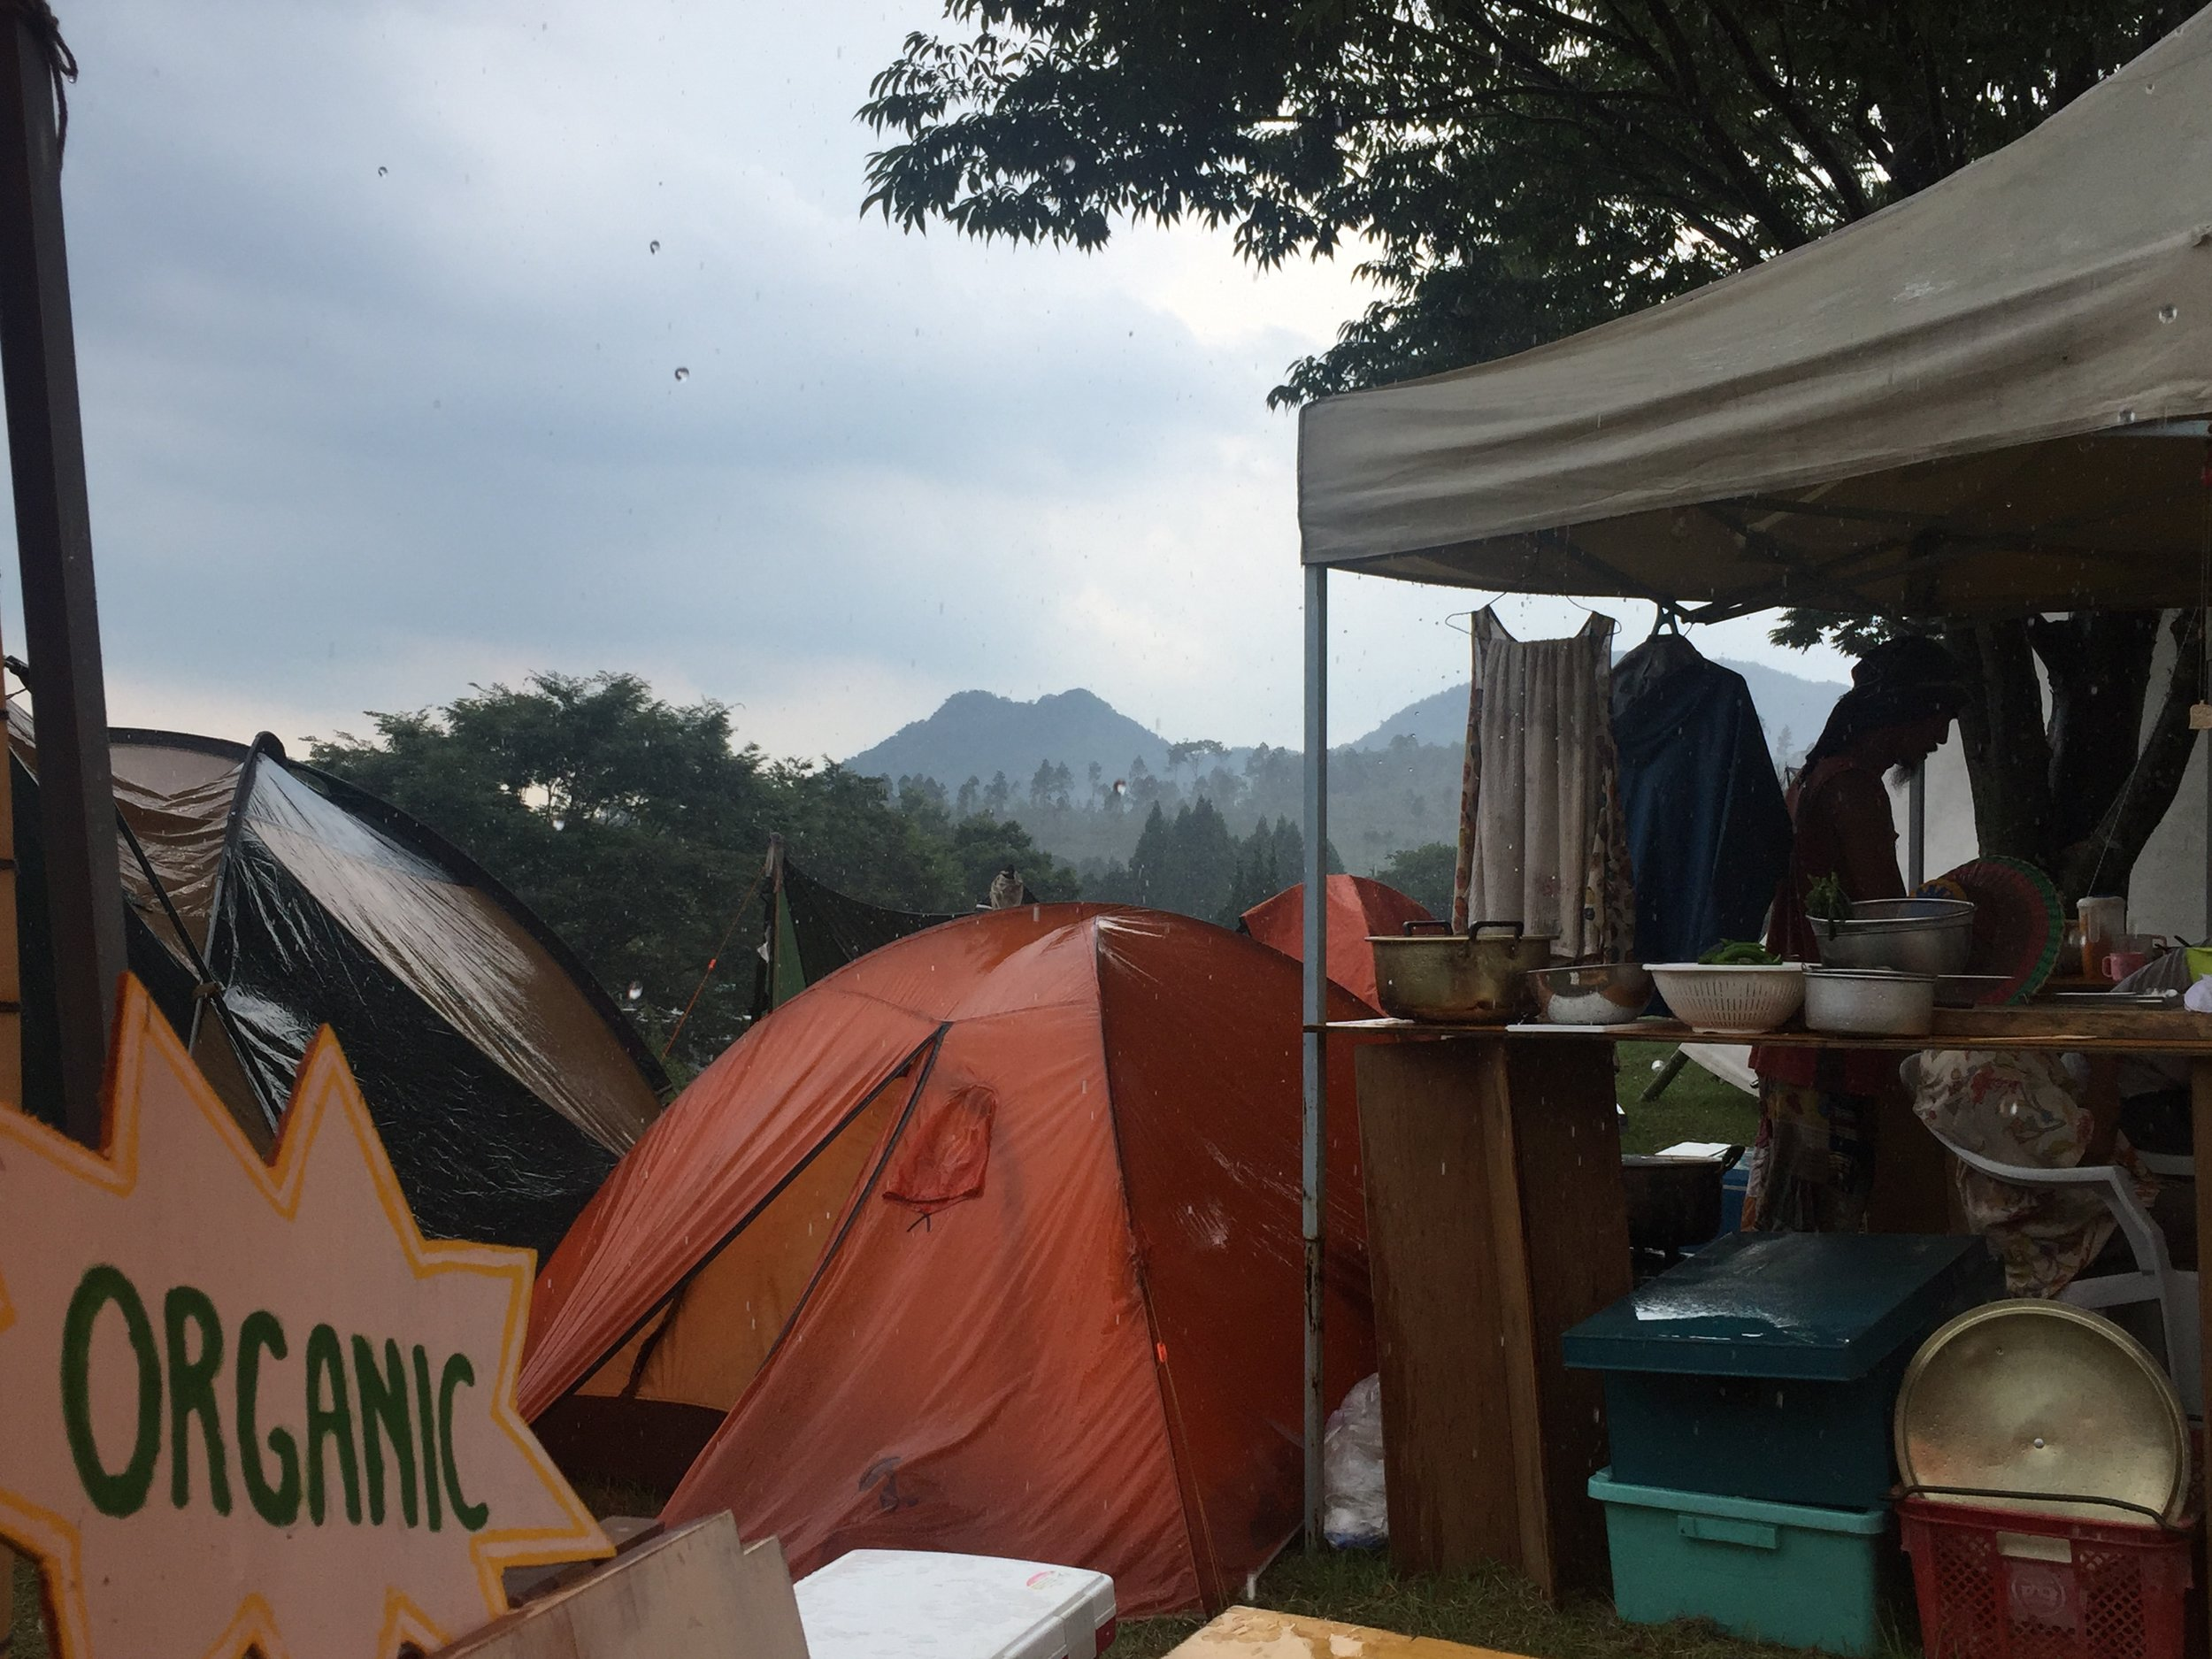 Camping at One Love Peace Camp